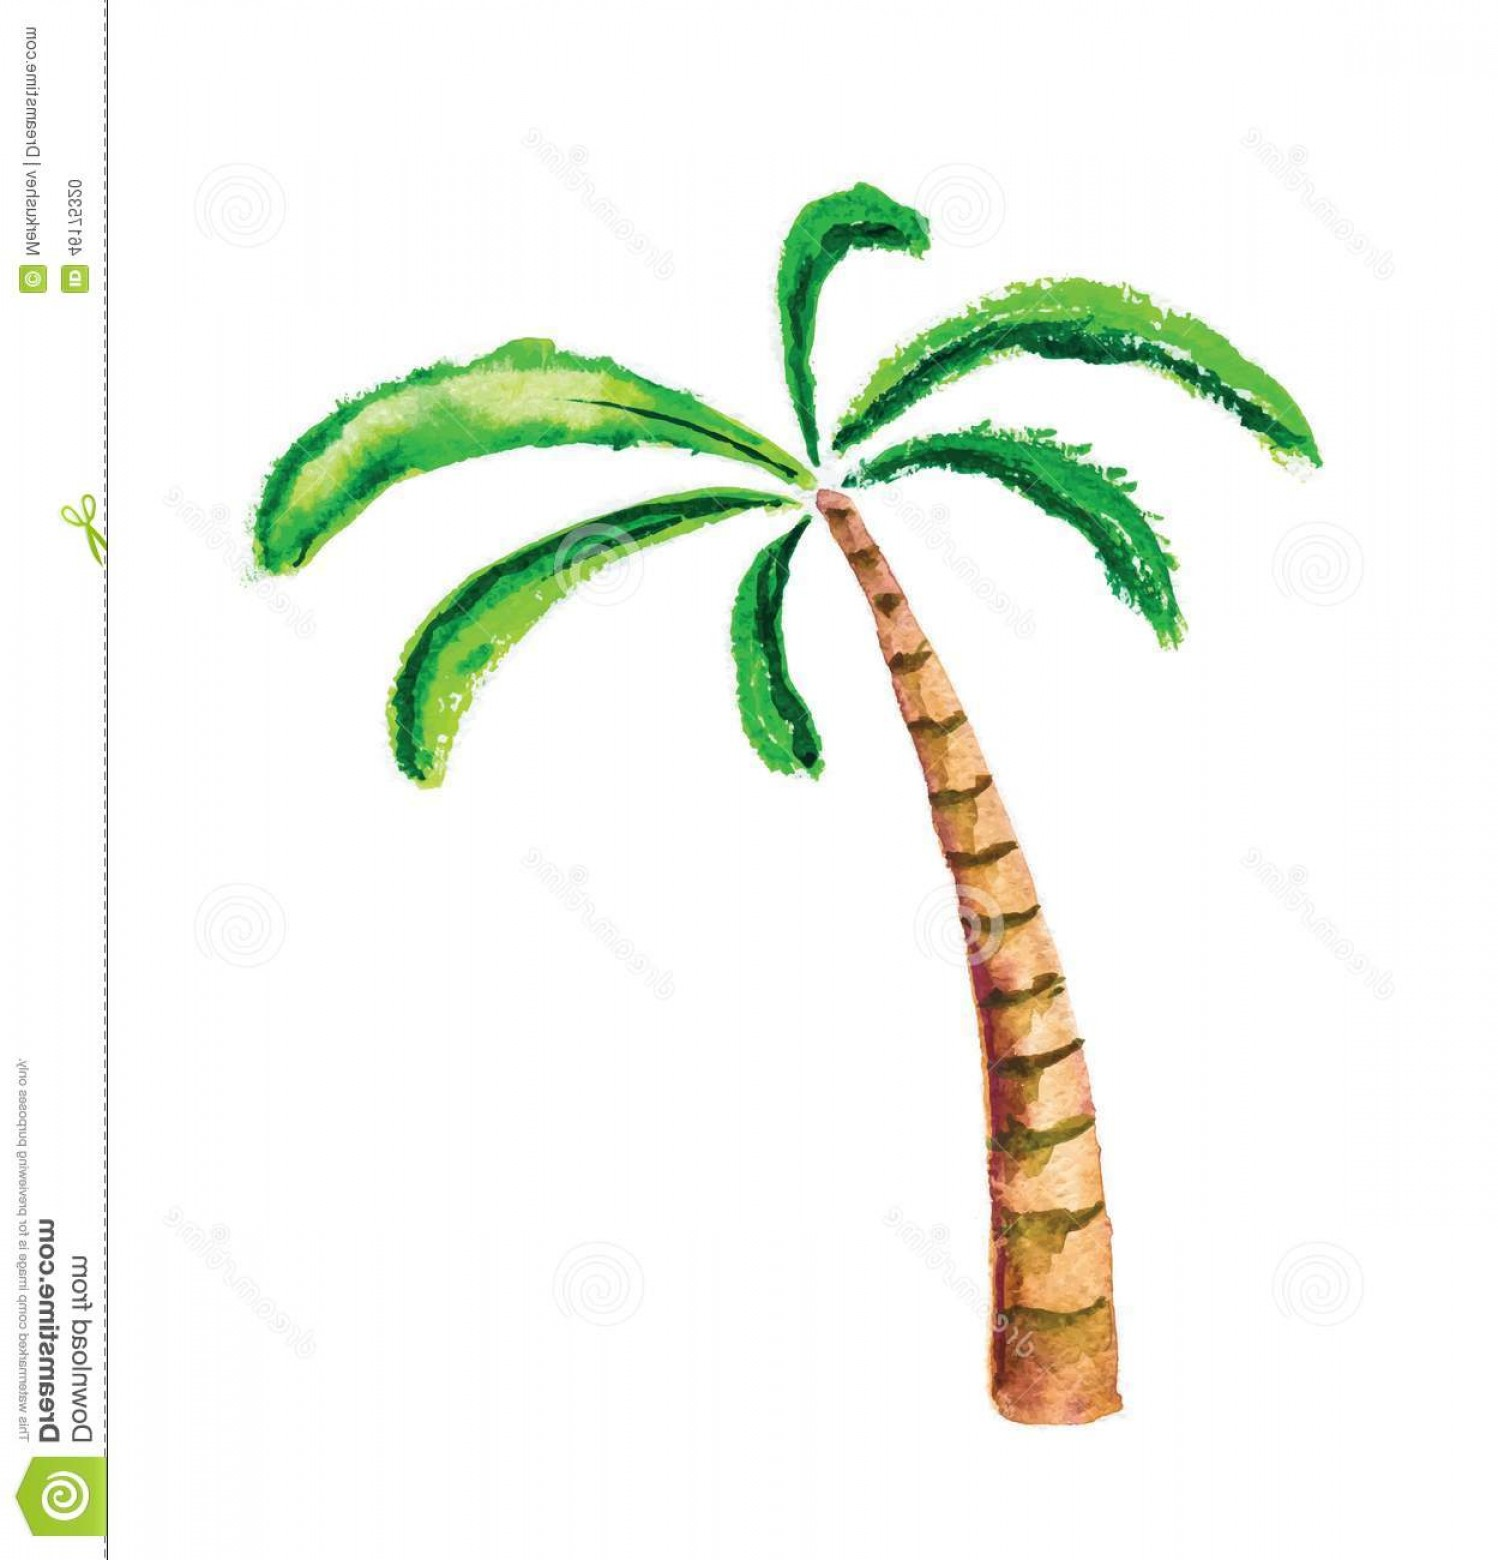 Watercolor Palm Tree Vector: Stock Illustration Palm Tree Watercolour Vector Illustration Isolated Image